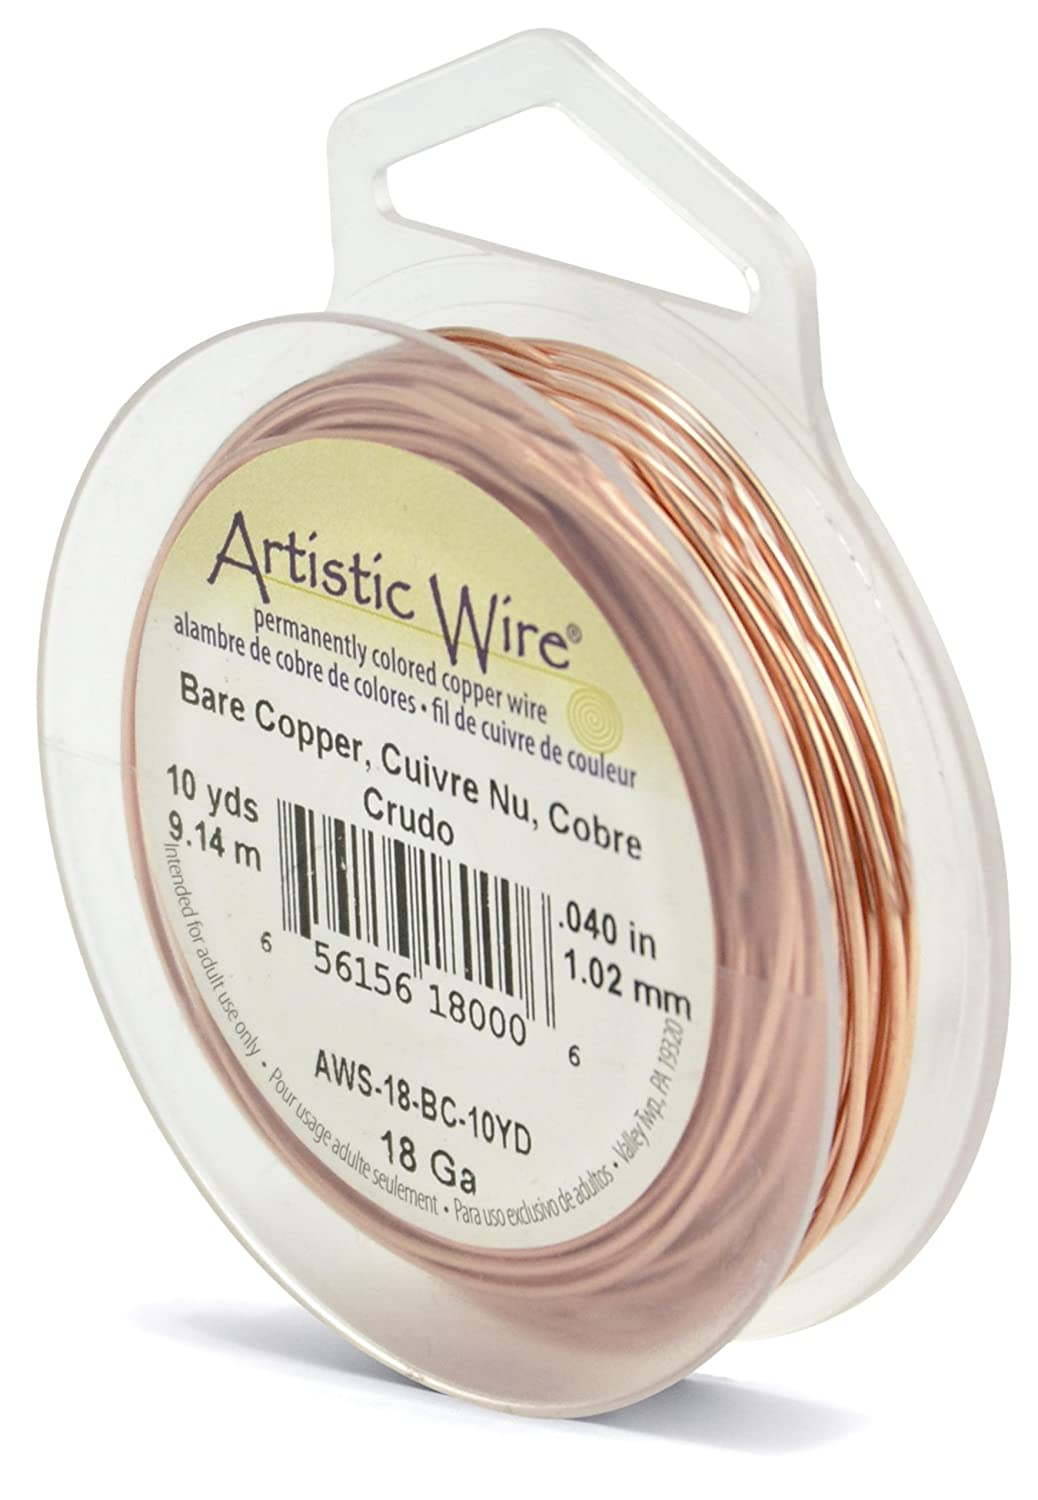 Amazon.com: Artistic Wire 18-Gauge Bare Copper Wire, 10-Yards